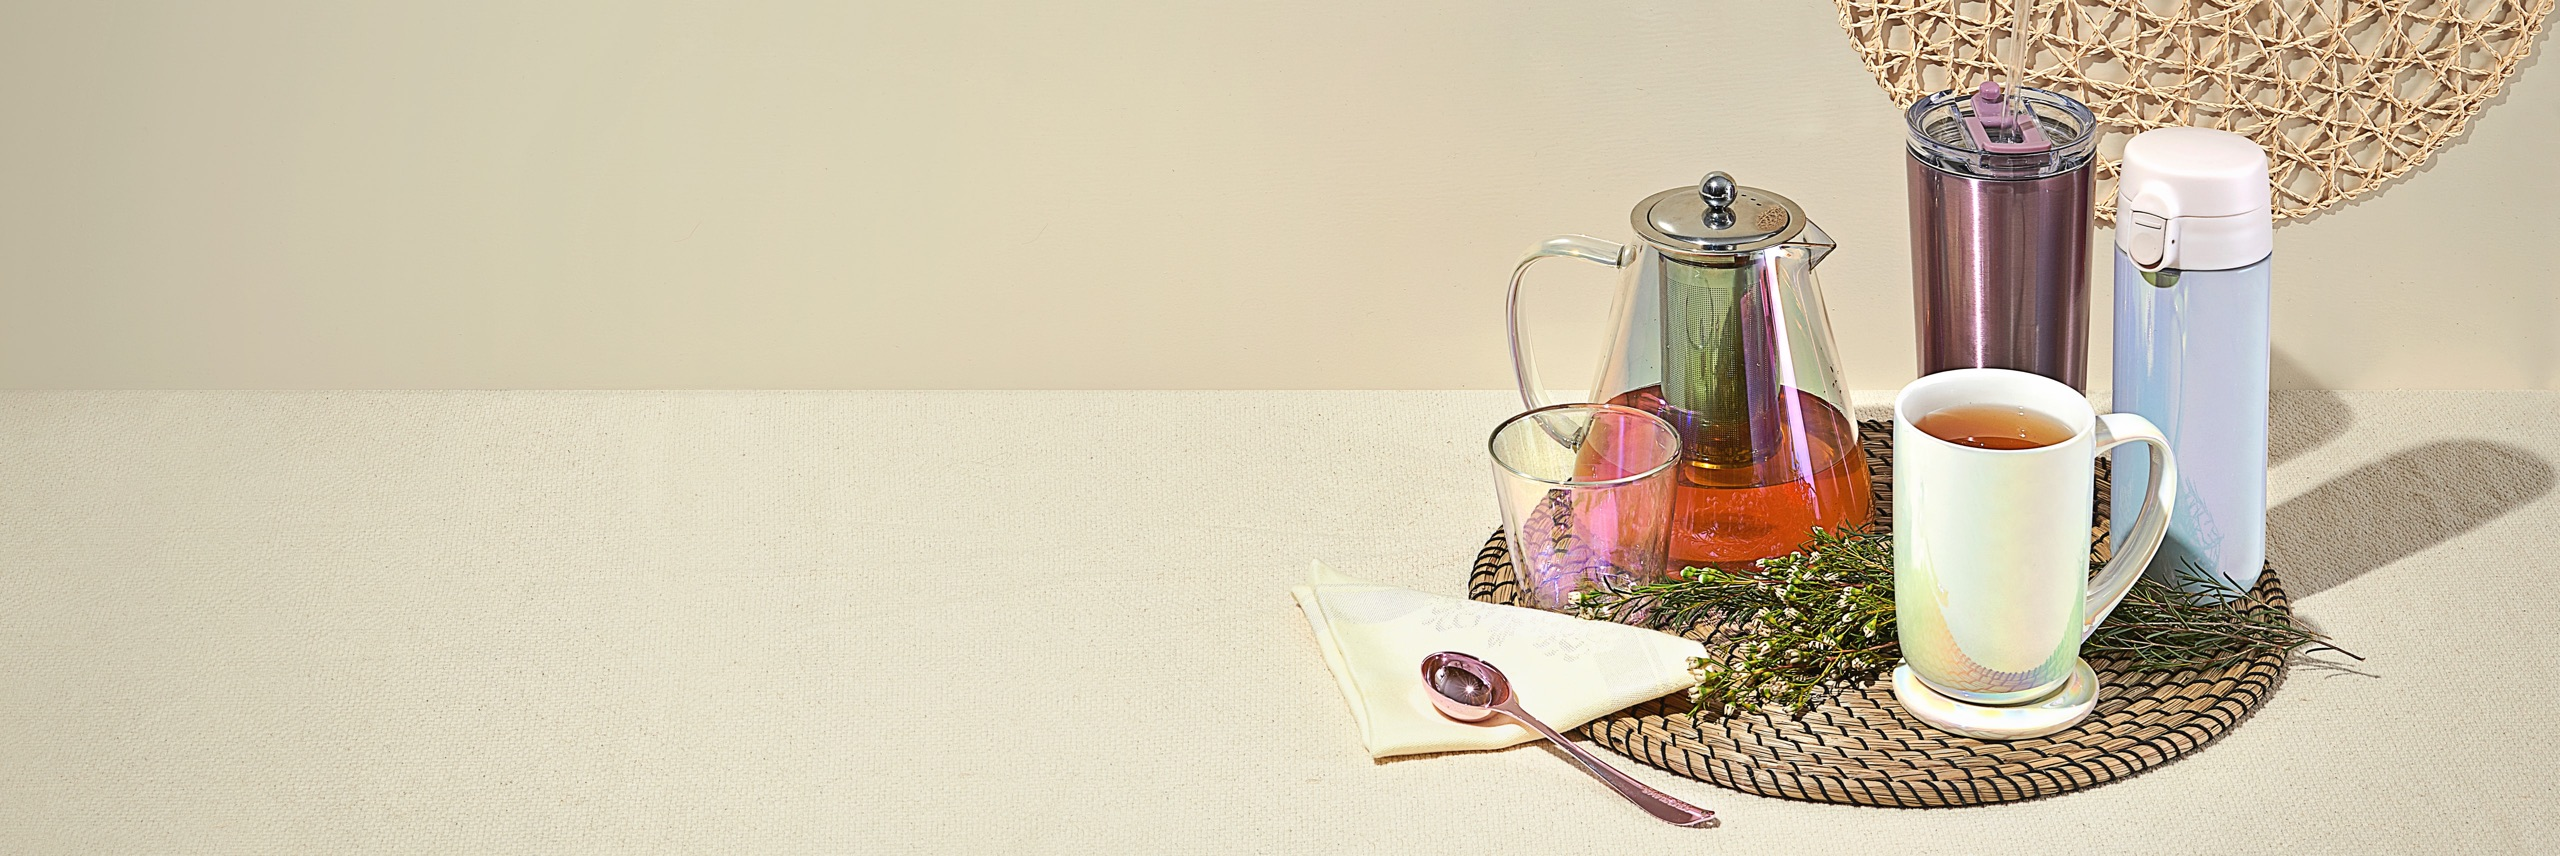 Various iridescent accessories grouped together on a weaved placemat.